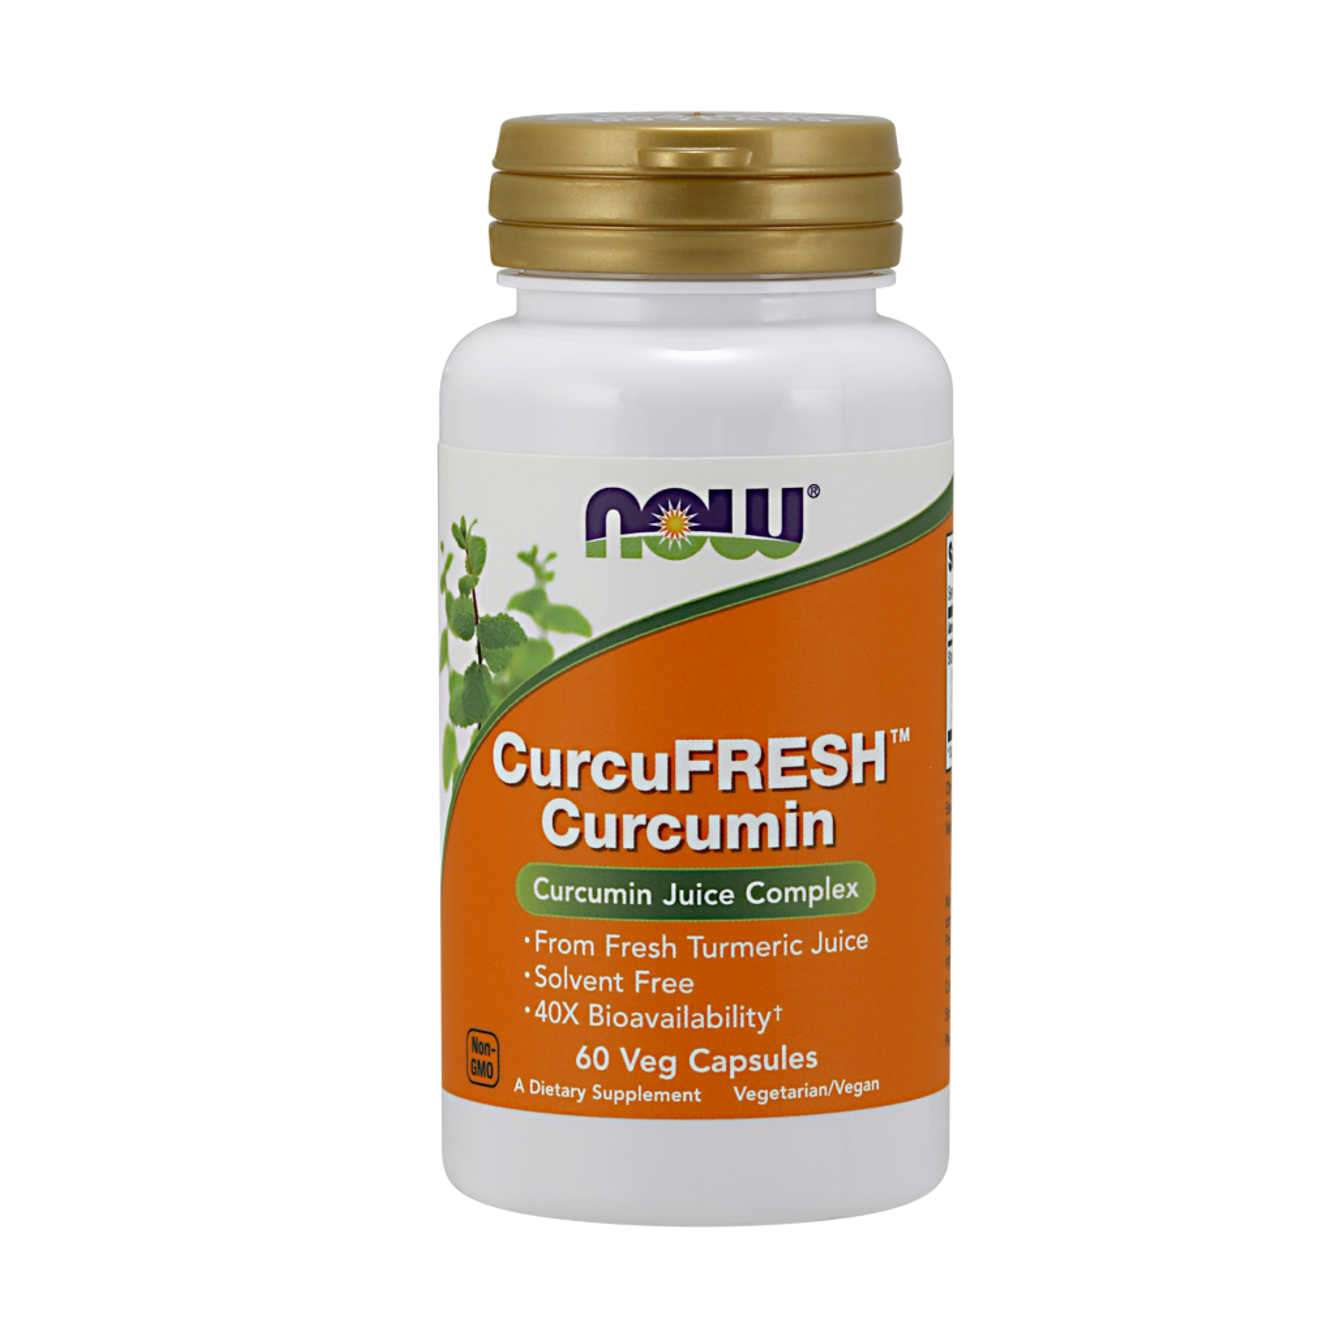 CURCUFRESH CURCUMIN - 60 veg caps